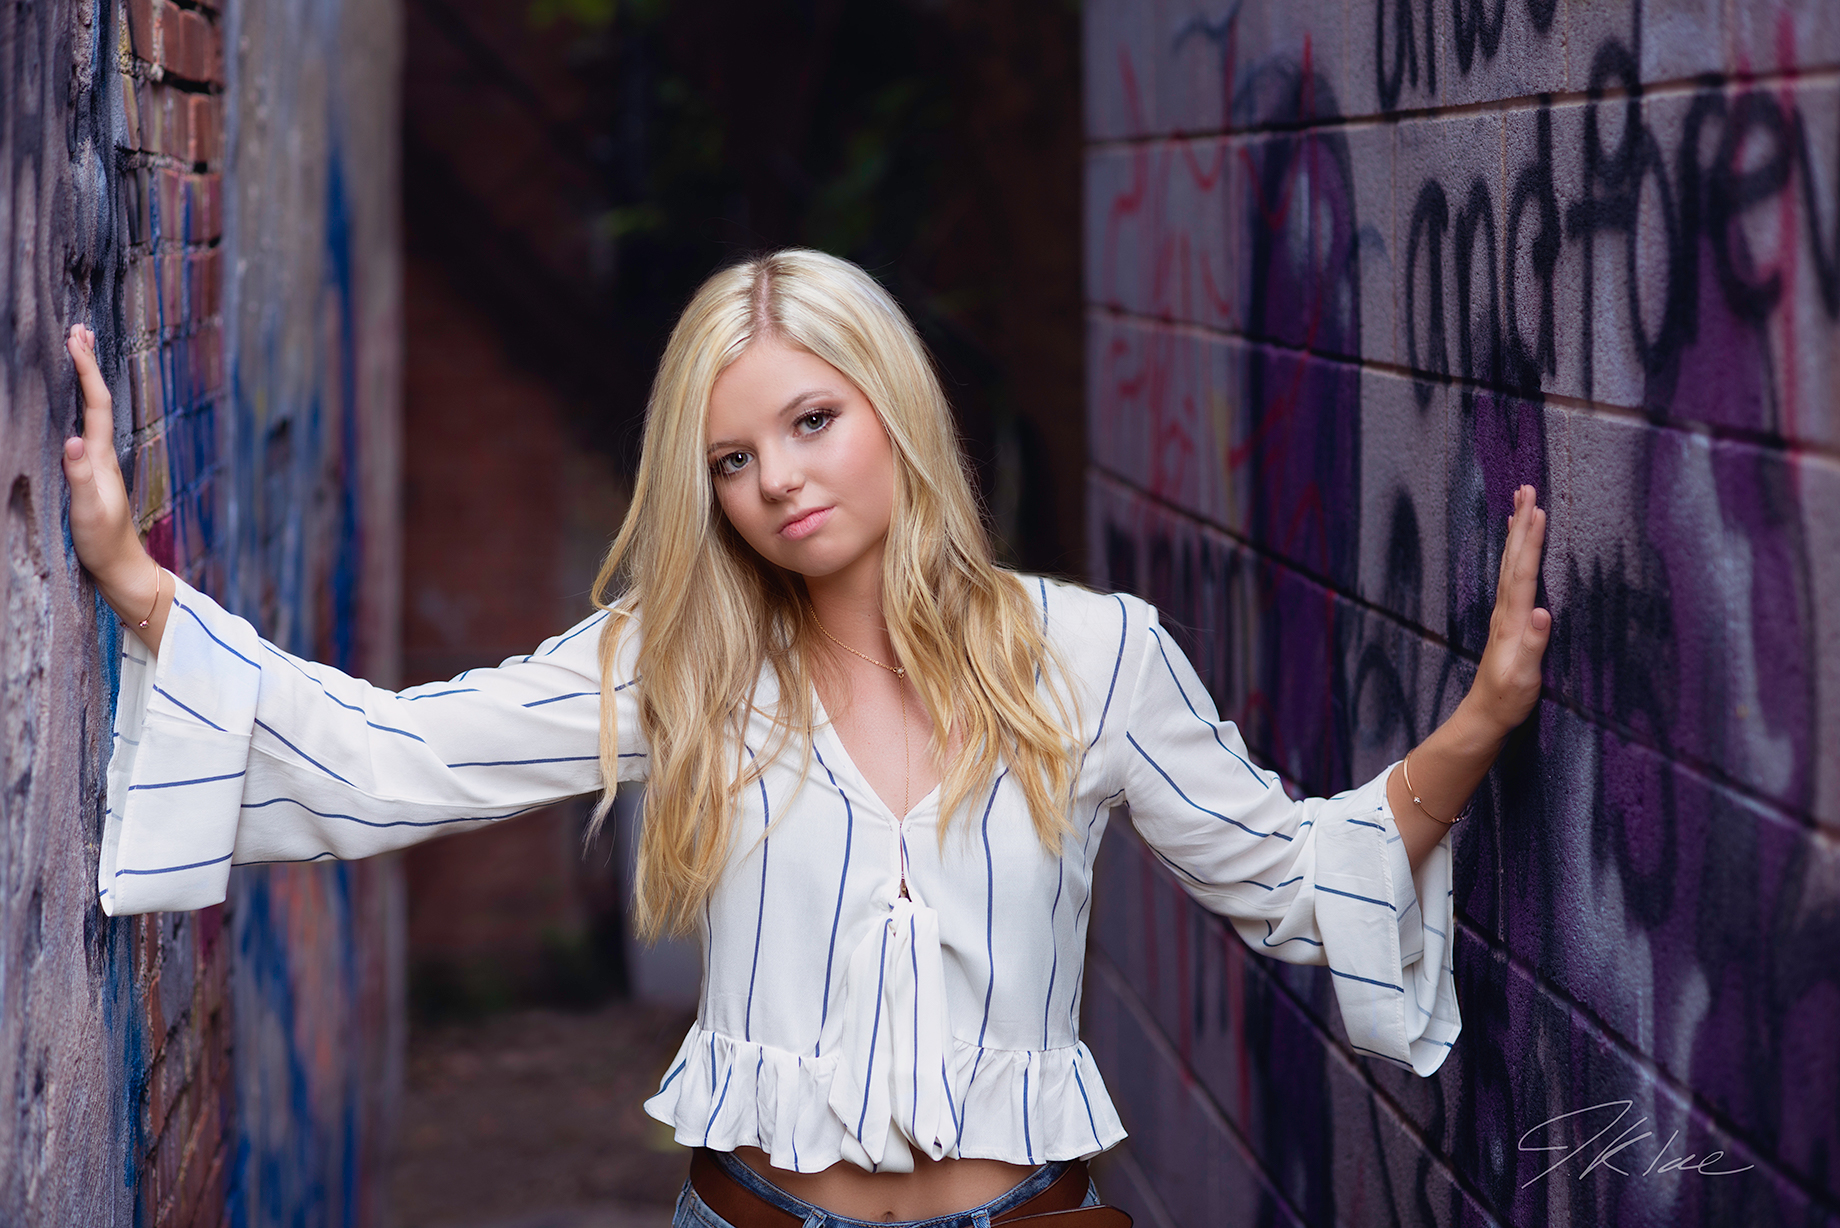 Downtown McKinney Texas Girls Senior Picture with Purple Graffiti Wall